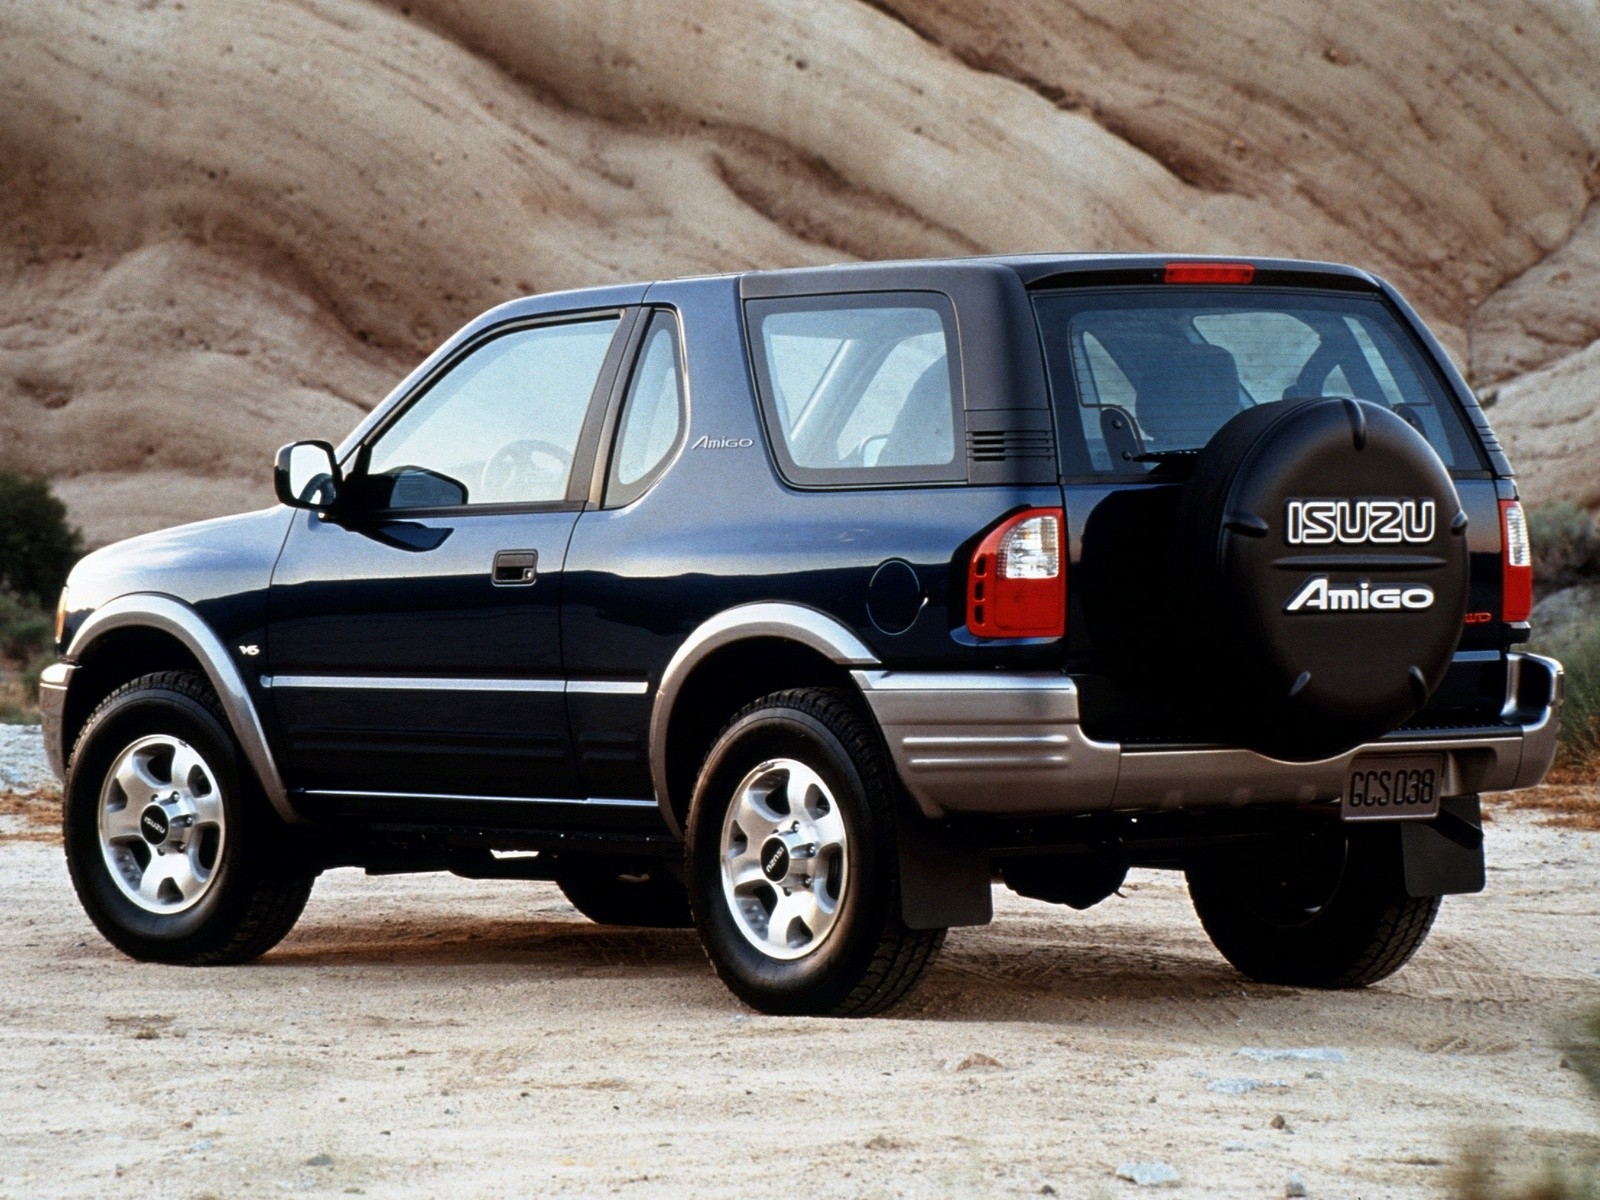 ISUZU Amigo 3 Doors specs & photos - 1997, 1998, 1999, 2000, 2001, 2002, 2003 - autoevolution